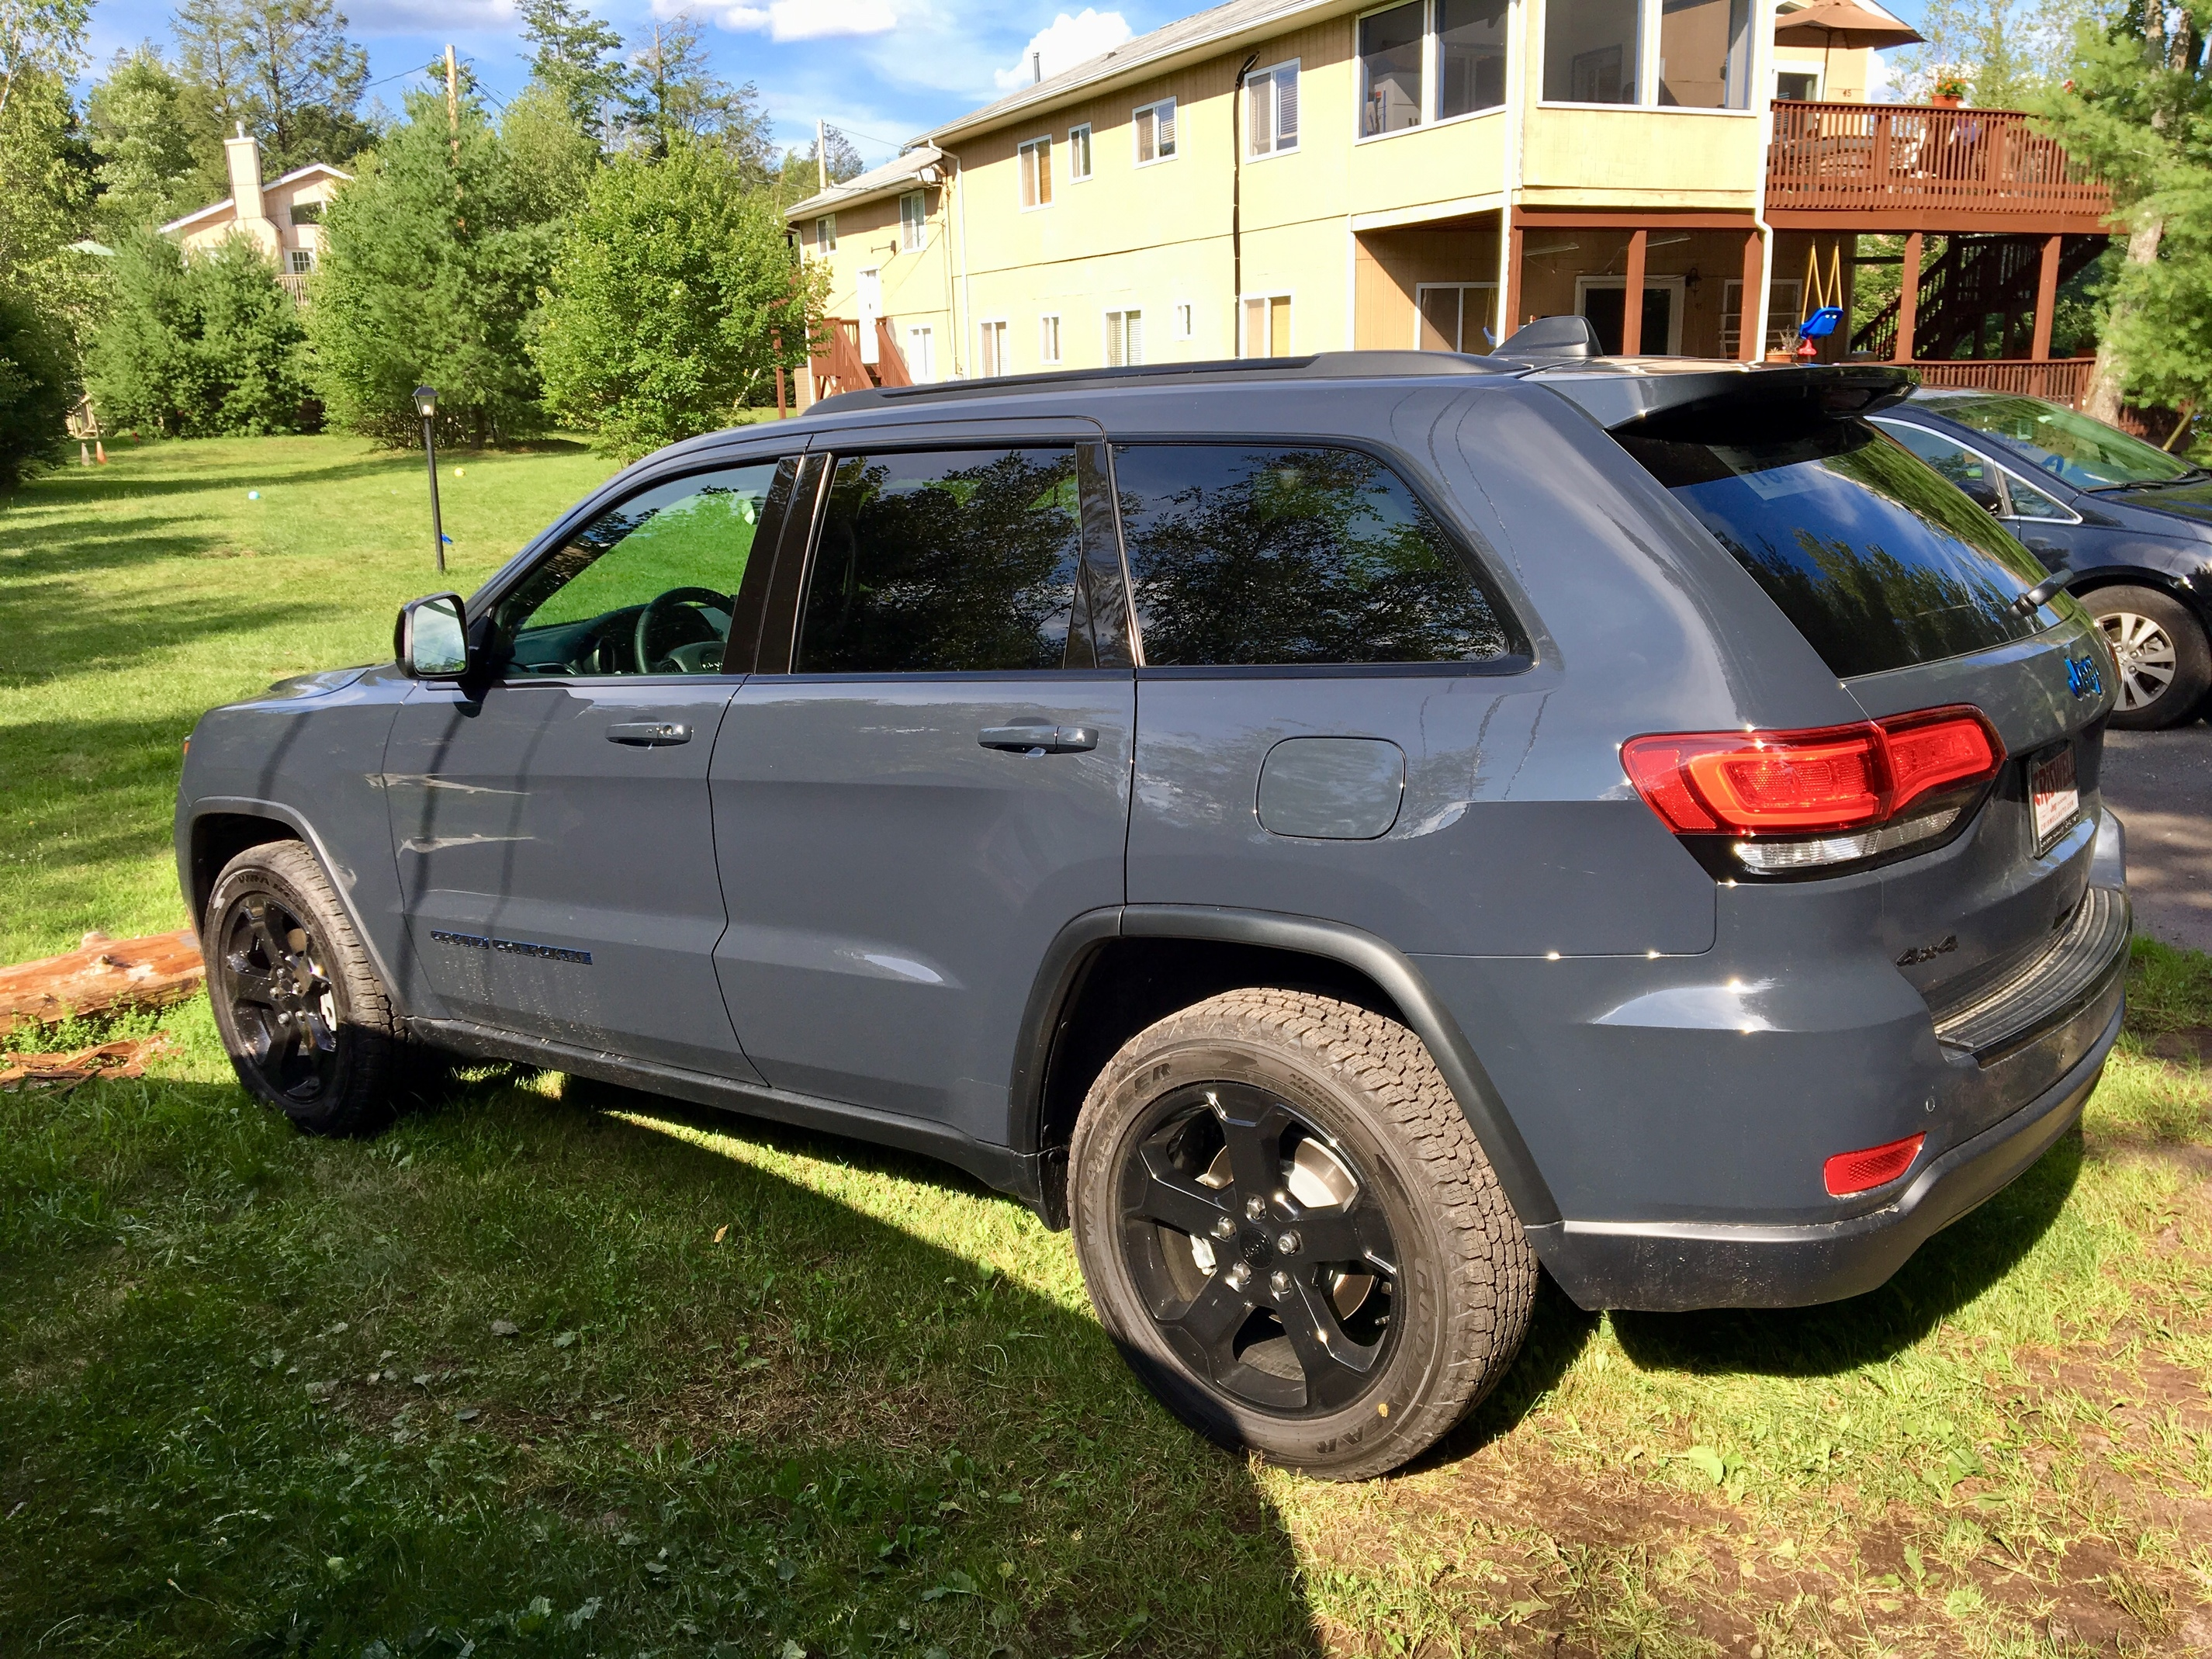 2018 Jeep Grand Cherokee Upland 12k miles 39 months $359